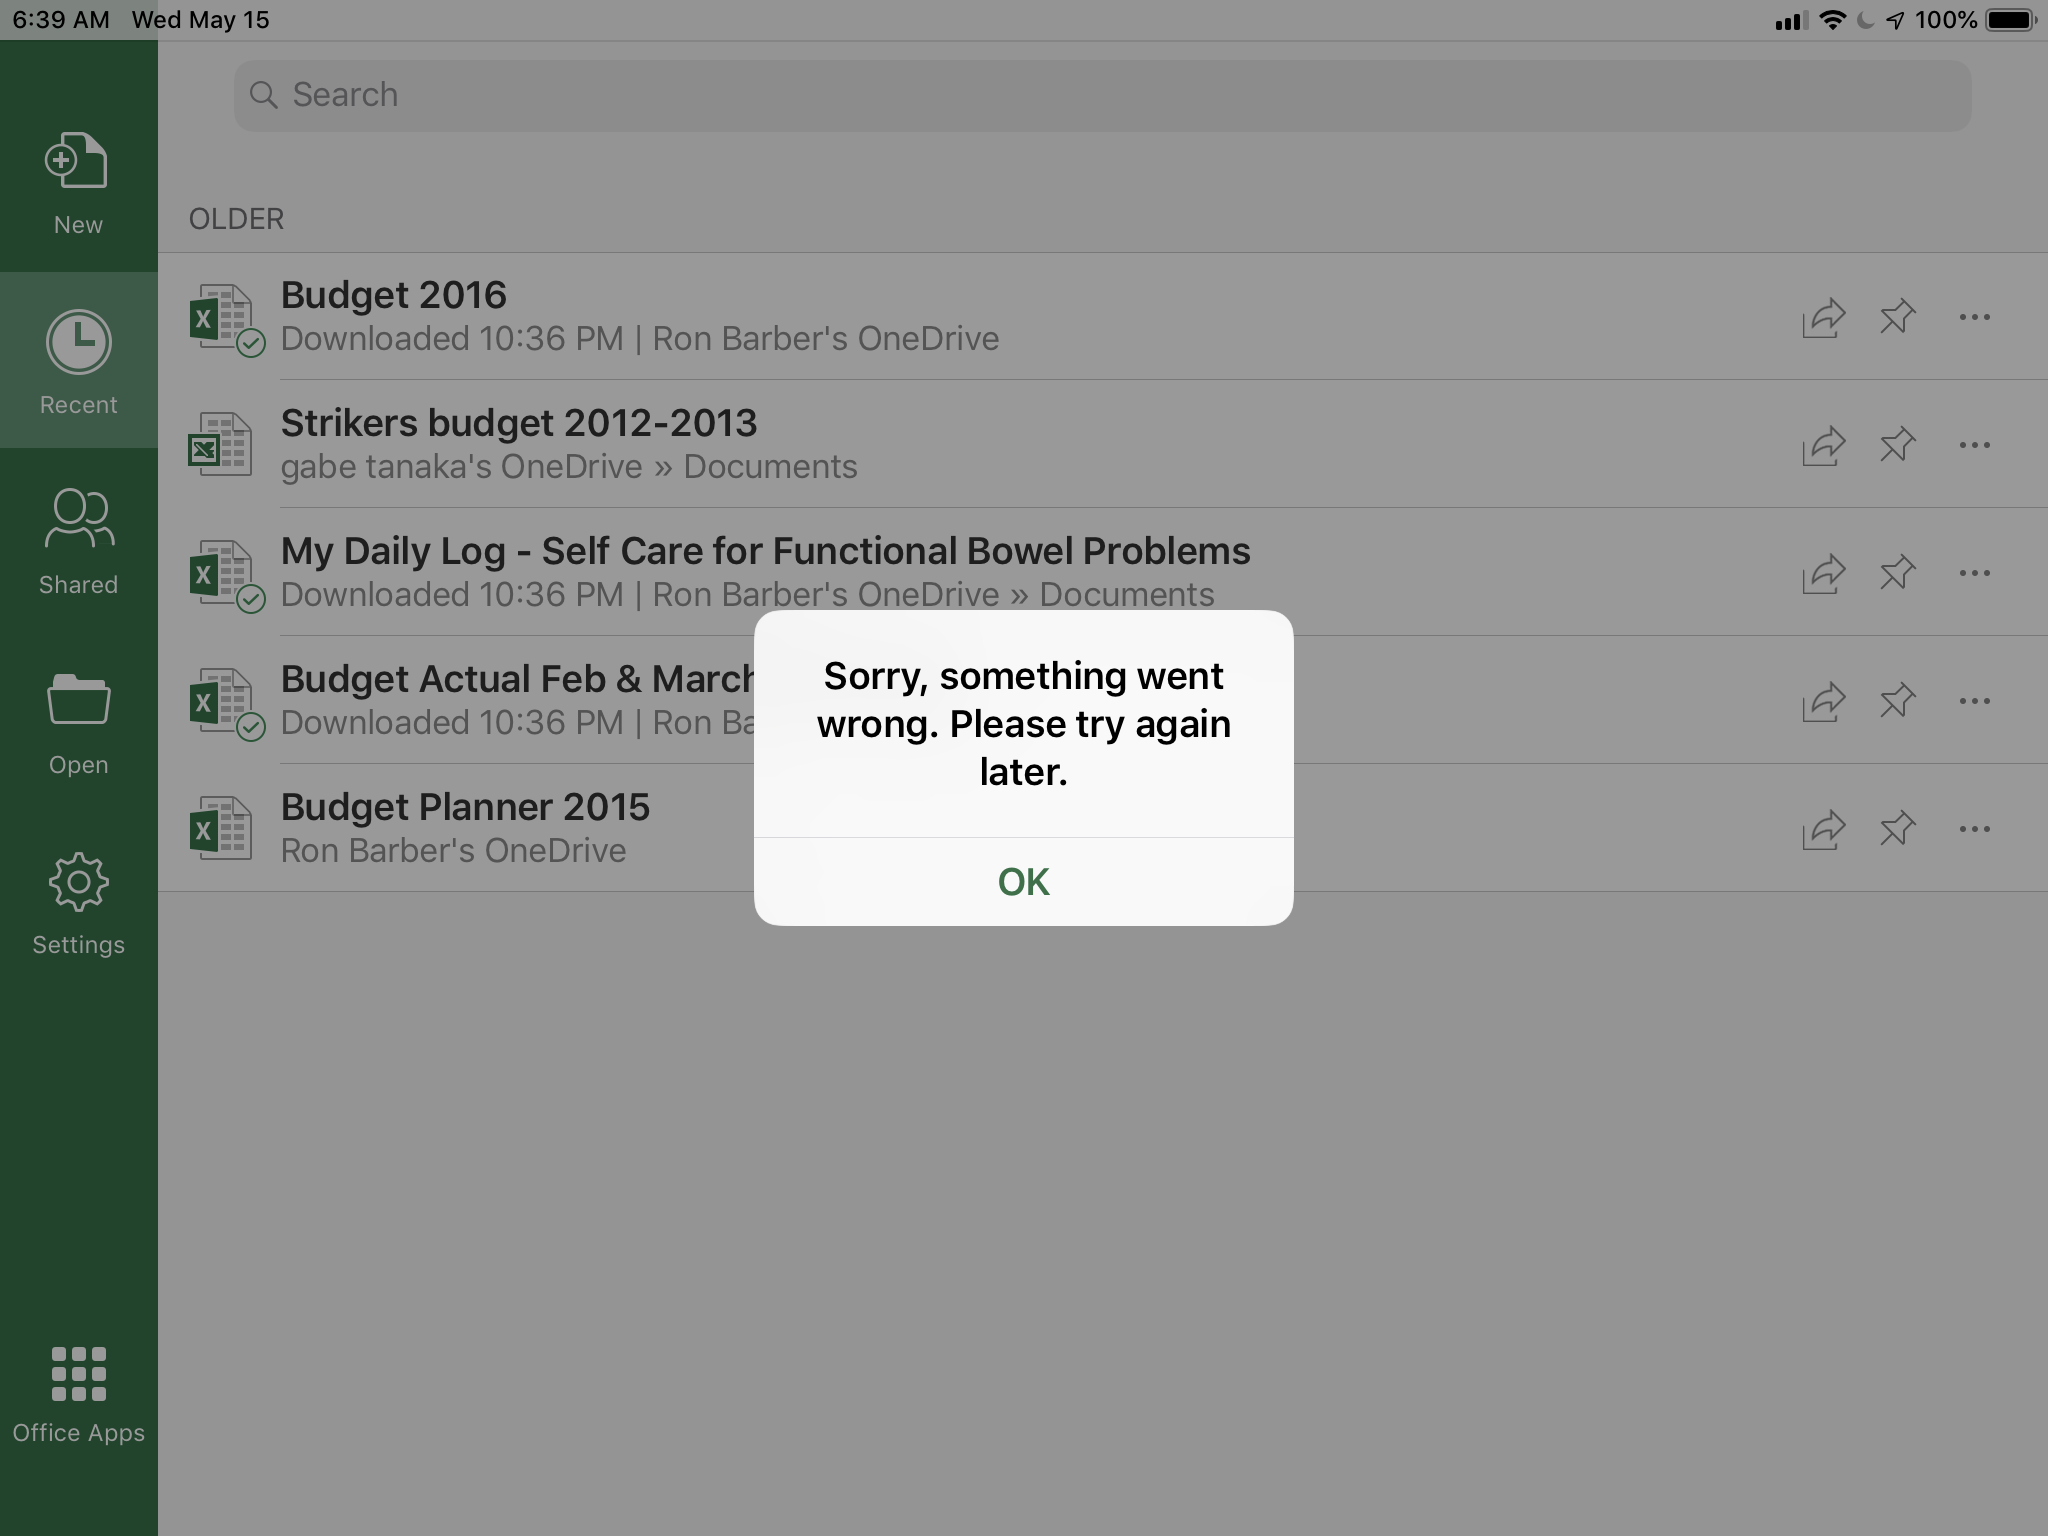 Microsoft Excel,Word and Powerpoint will not open on my iPad